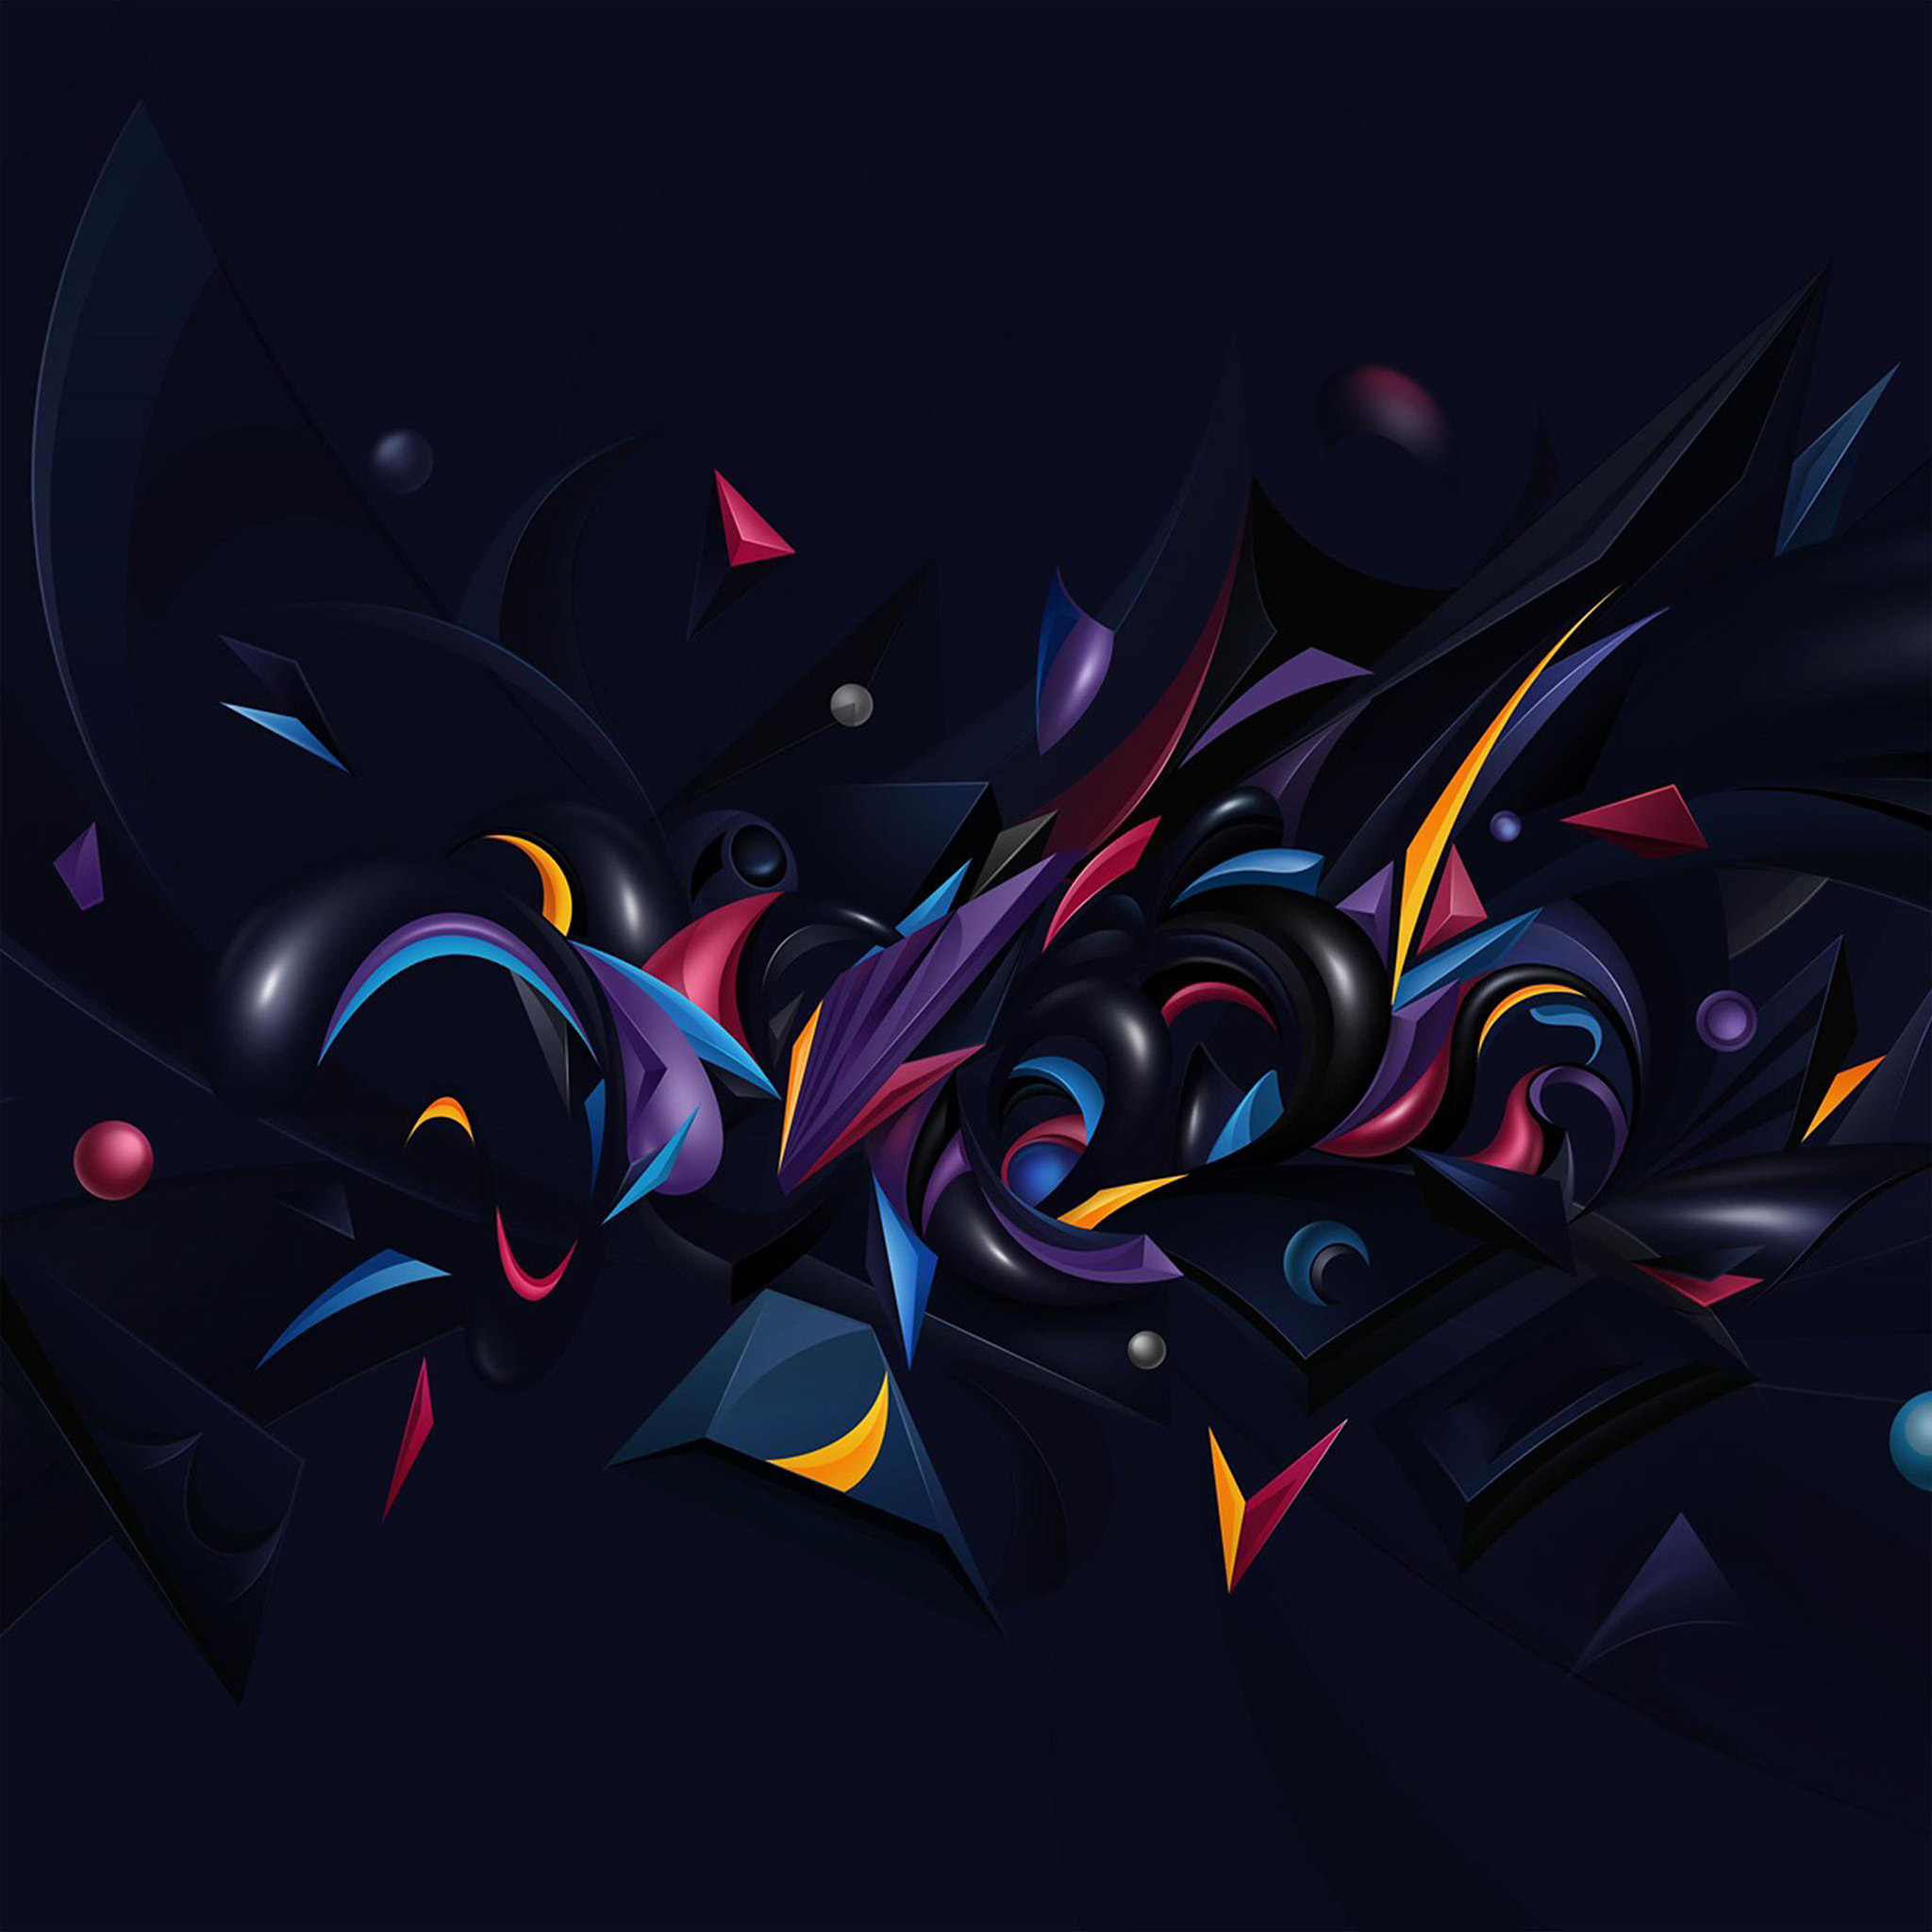 3d Wallpaper For Ipad Pro Vq27 Abstract Art Pattern Rainbow Wallpaper